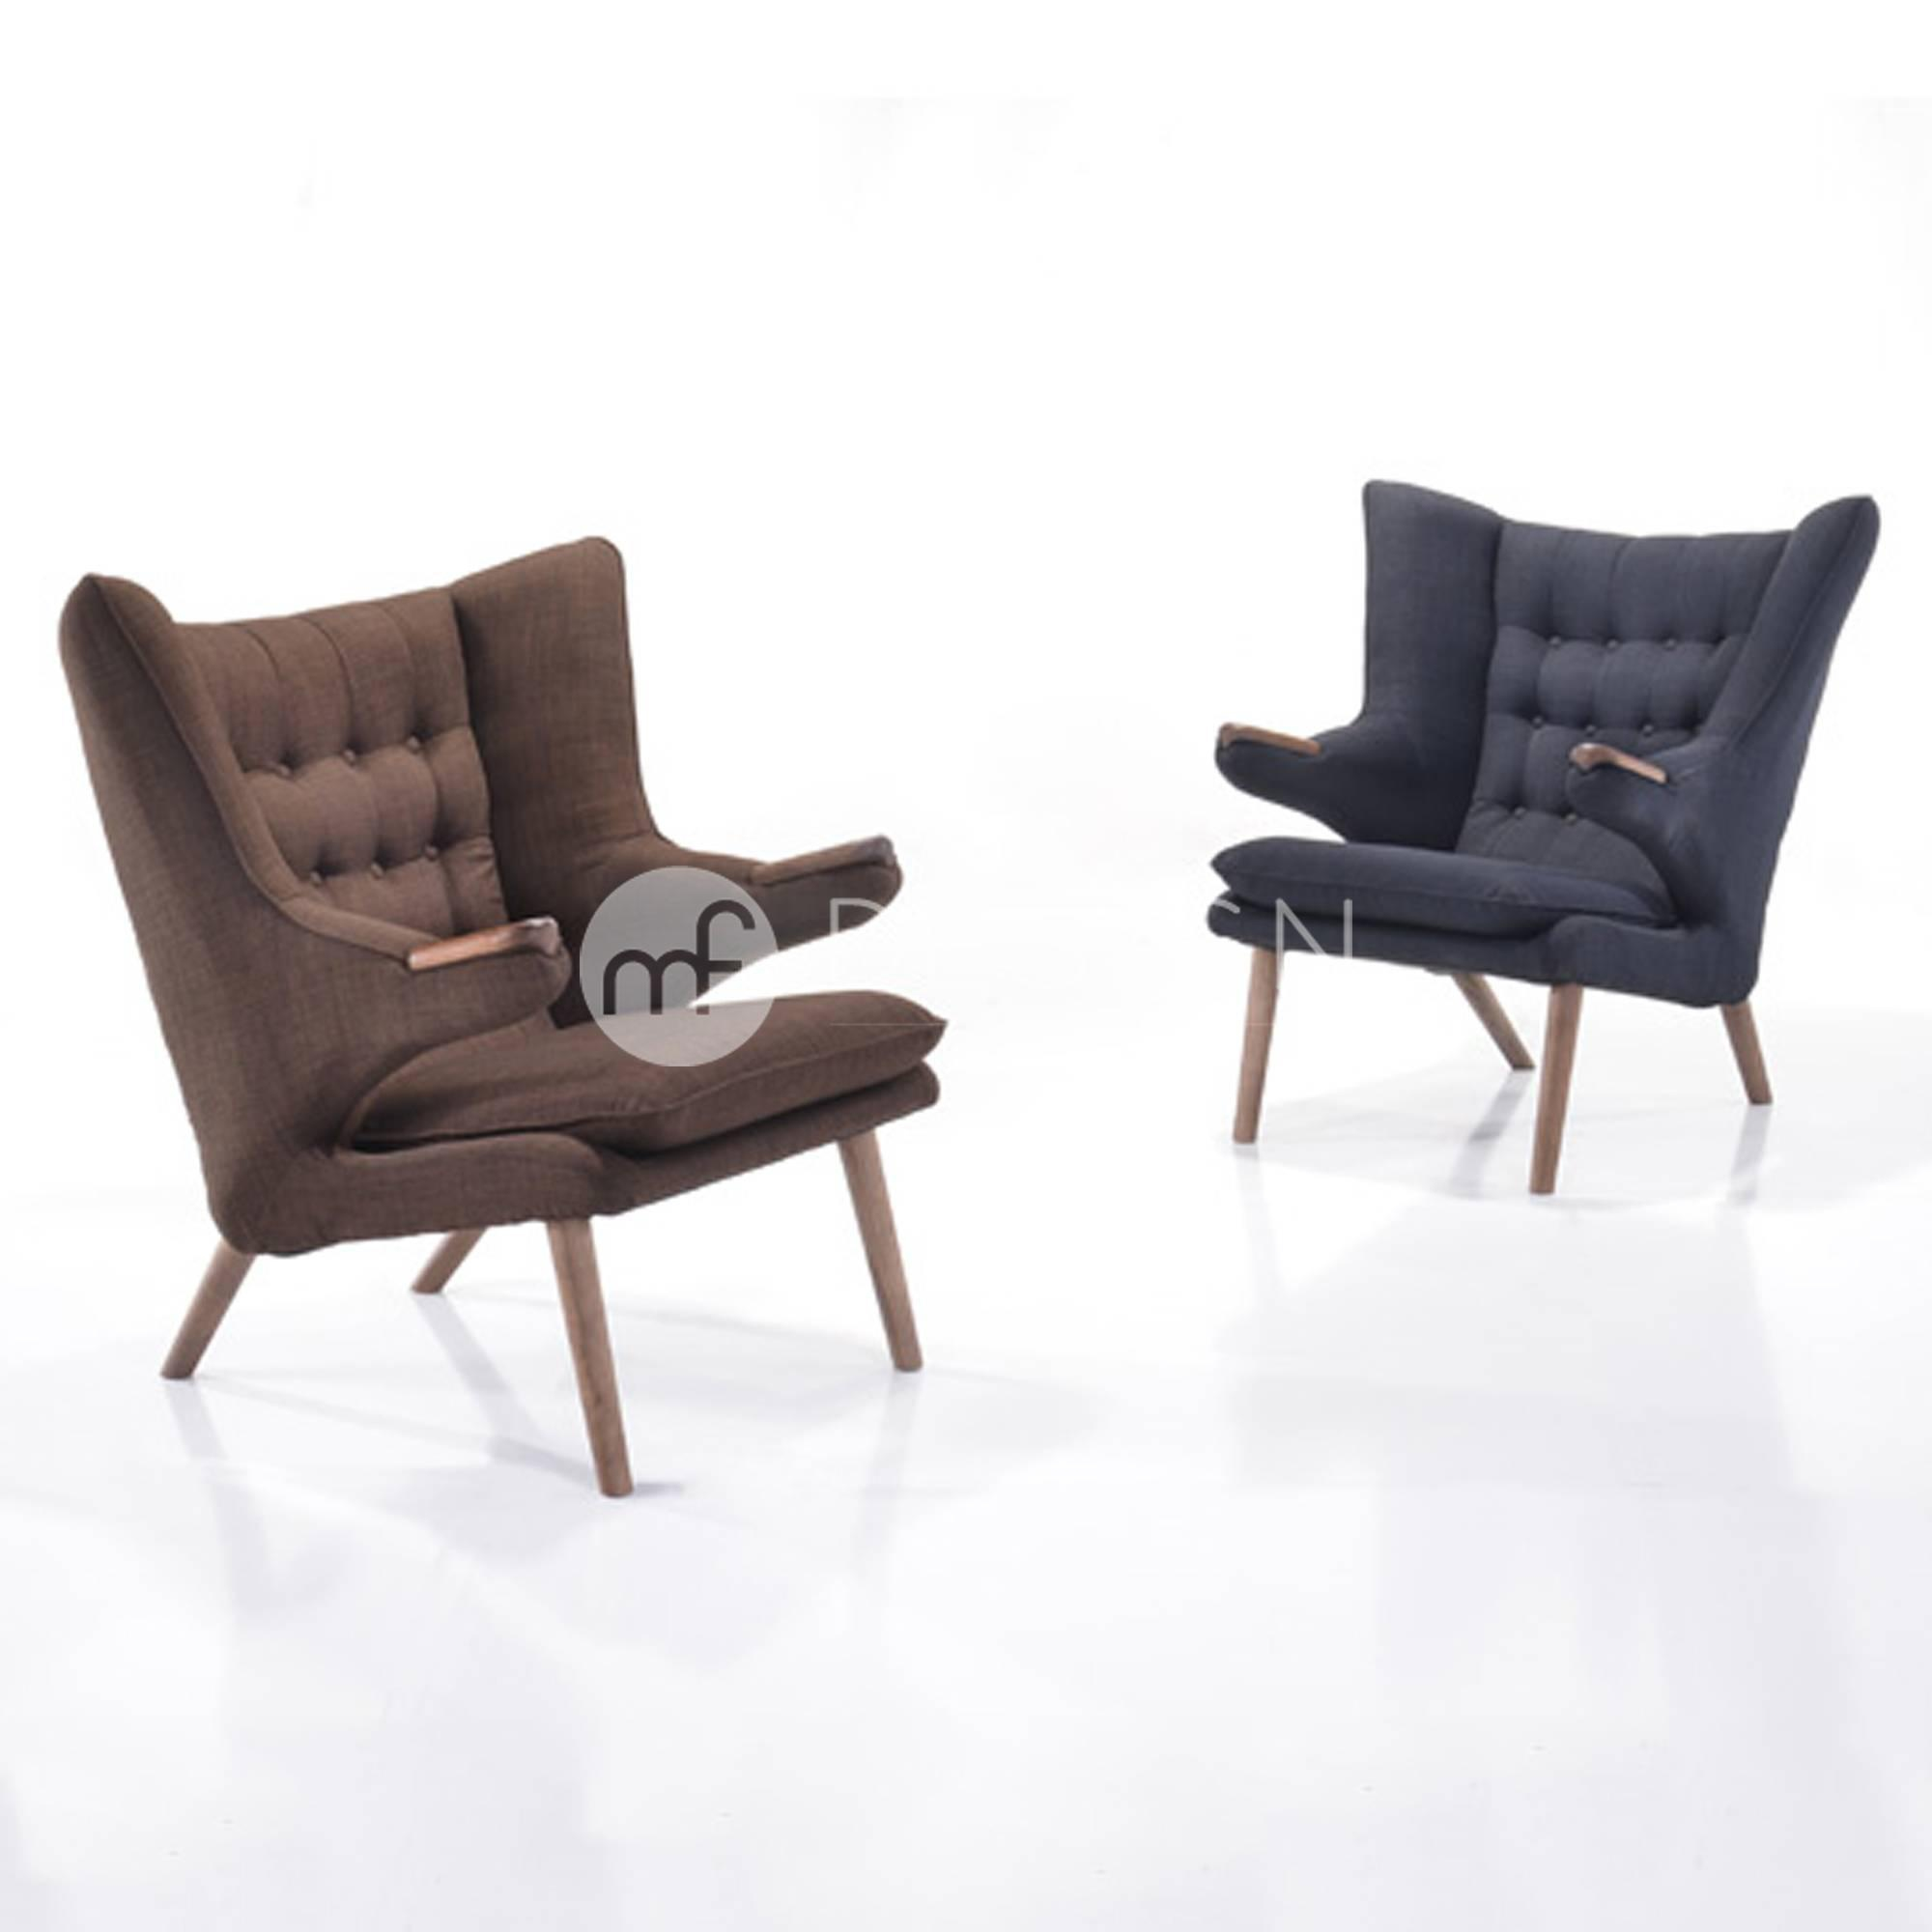 papa bear chair. MF DESIGN REPLICA PAPA BEAR CHAIR (TWO COLOUR OPTIONS) Papa Bear Chair